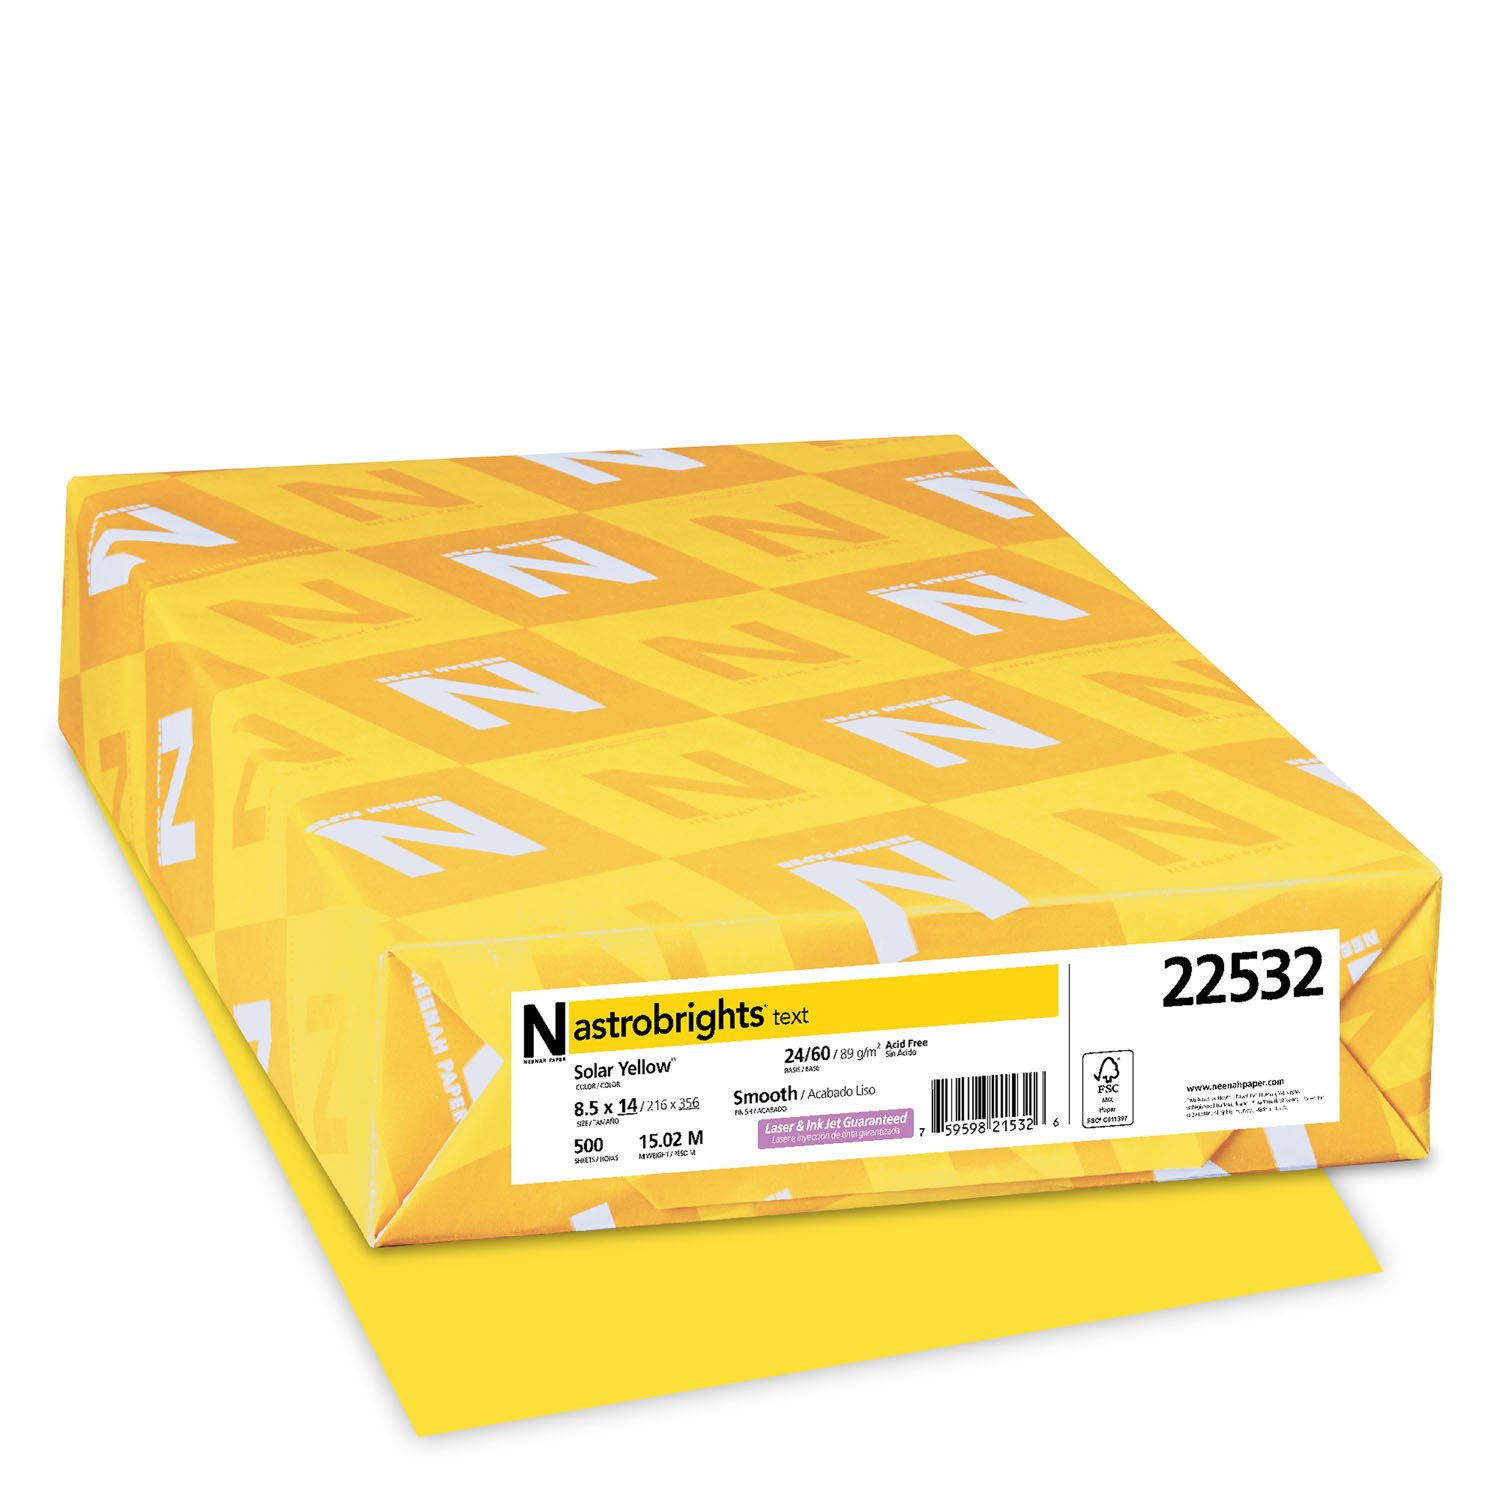 Wausau Astrobrights Heavy Duty Paper, 24 lb, 8.5 x 14 Inches, Solar Yellow, 500 Sheets (22532)